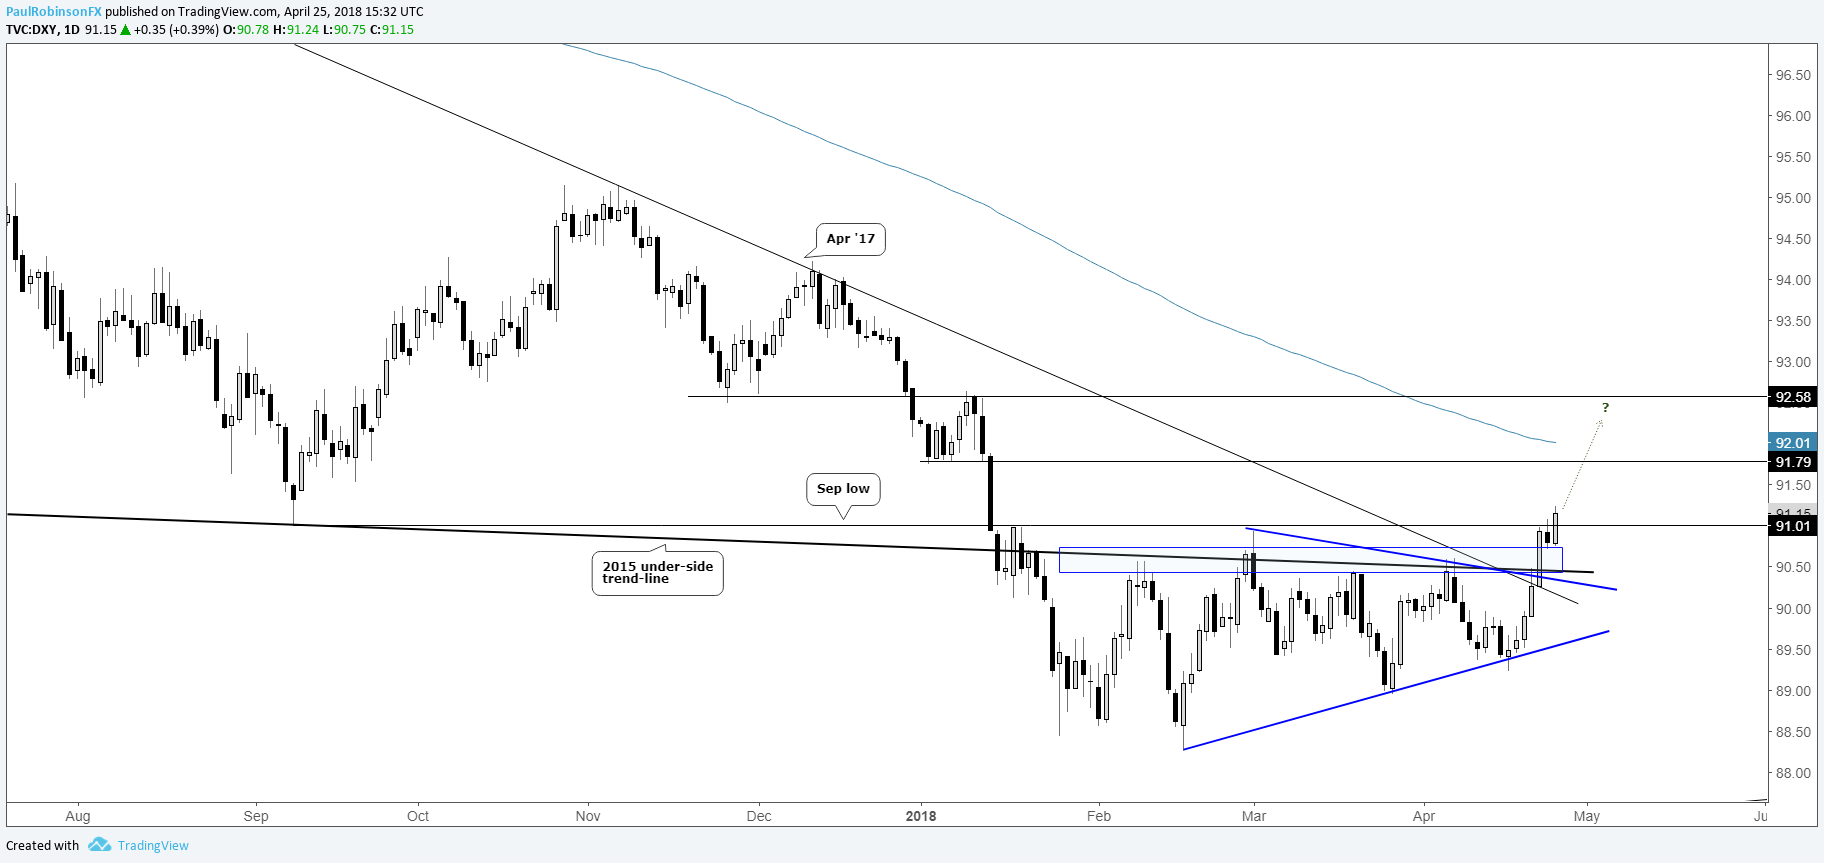 US Dollar Index DXY Daily Chart Breaking Out